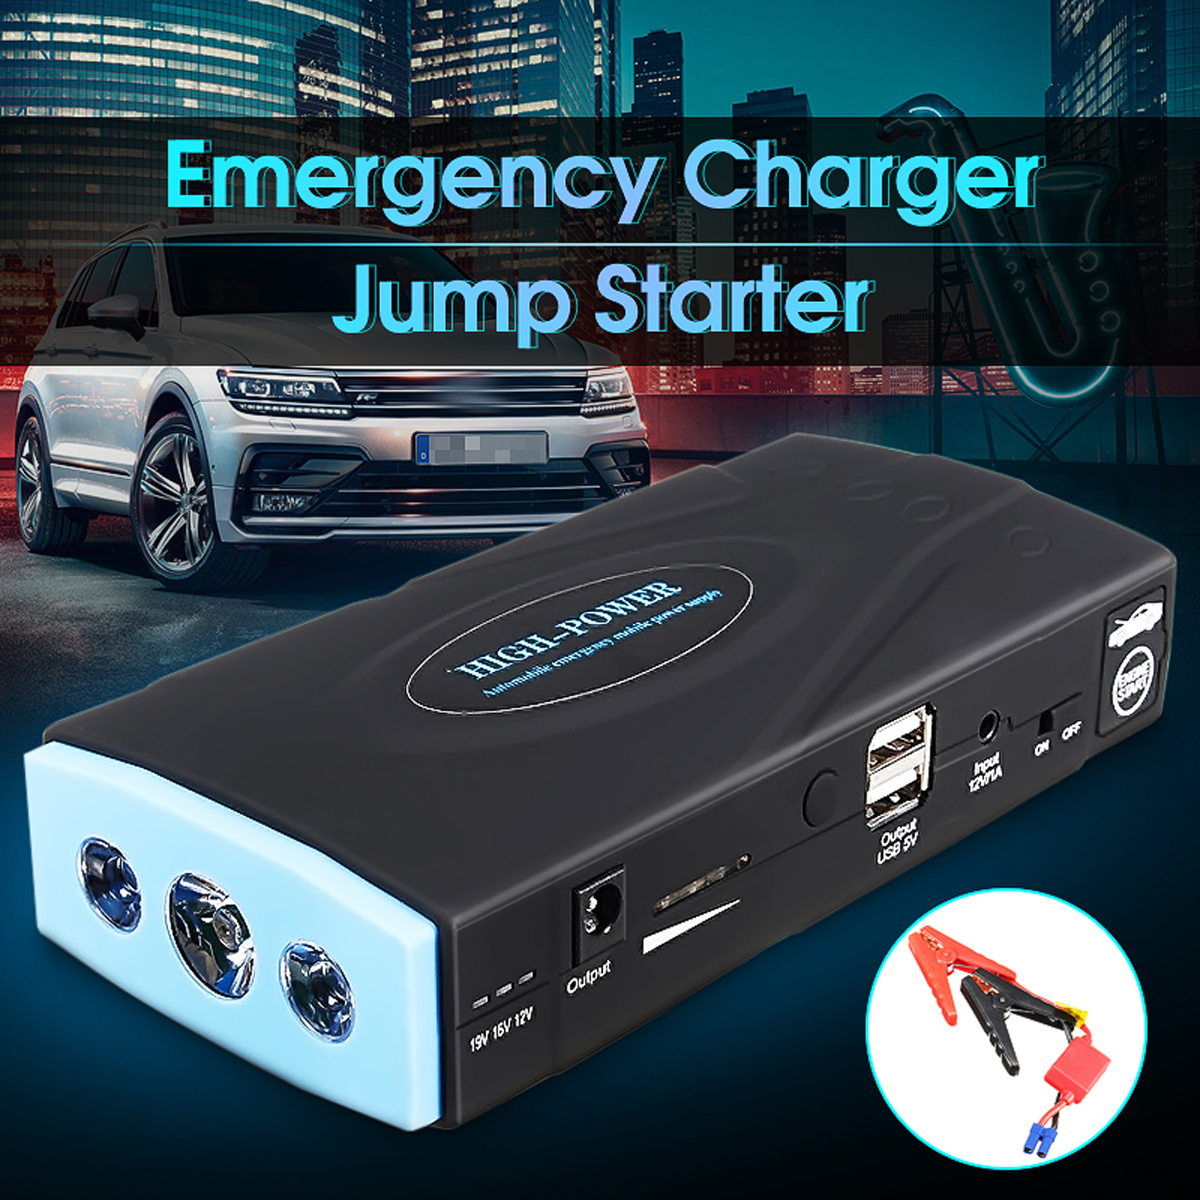 Useful 12000mAh 12V 2USB Multifunction Car Charger Battery Jump Starter LED Light Auto Emergency Mobile Power Bank Tool Kit jump starter 89800mah multifunction car charger battery jump starter 4usb led light auto emergency mobile power bank kit 600a